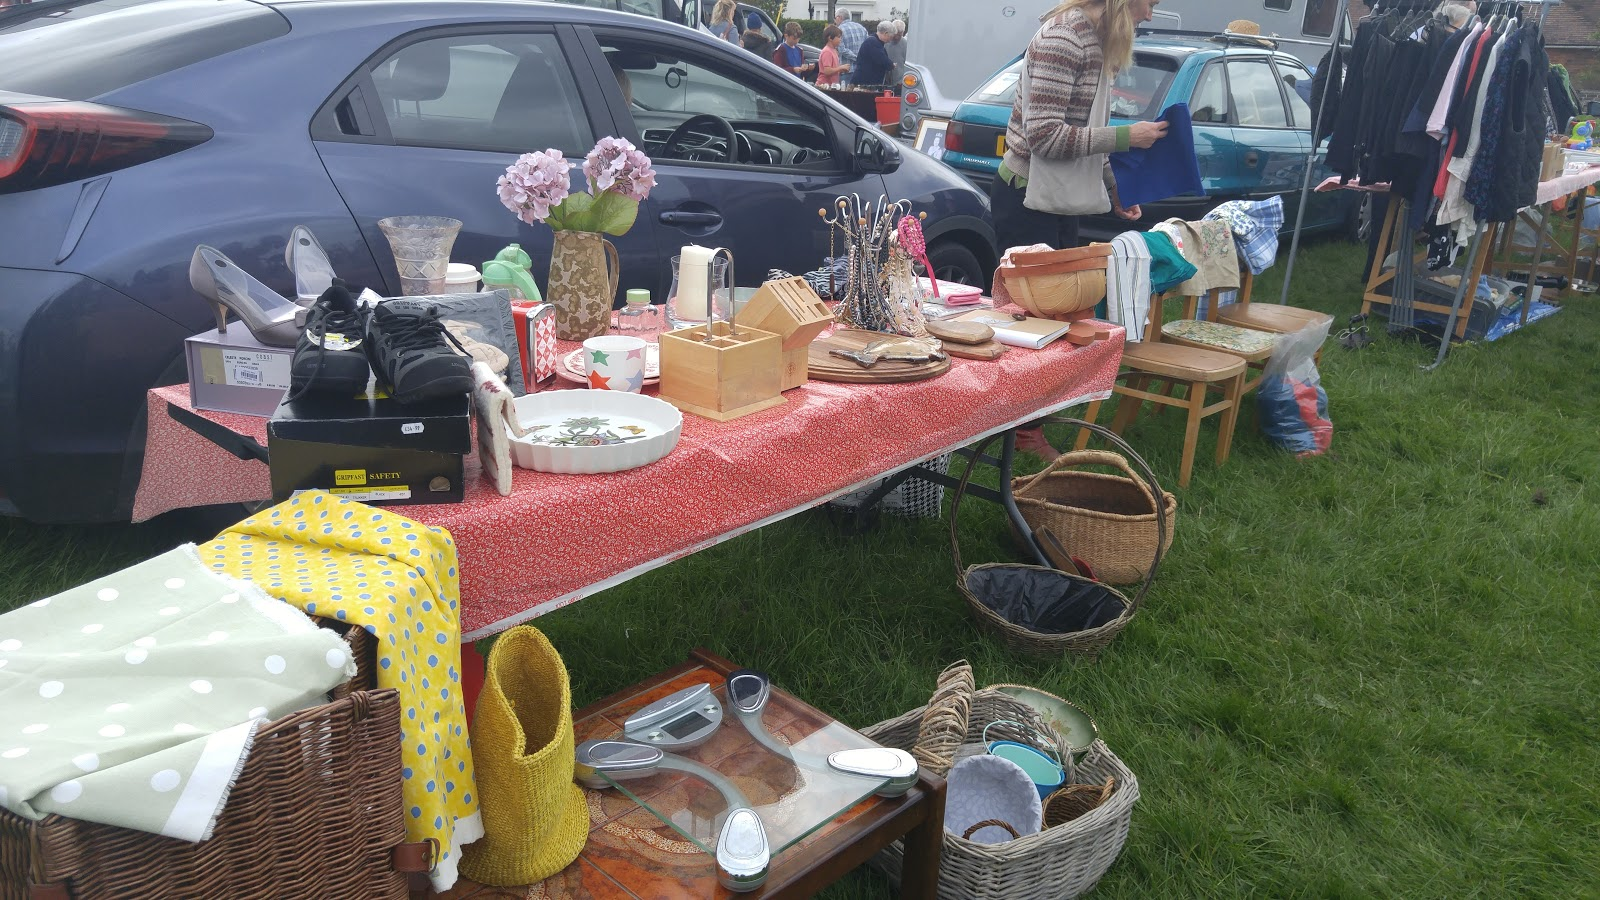 Finding Antiques At Car Boot Sales